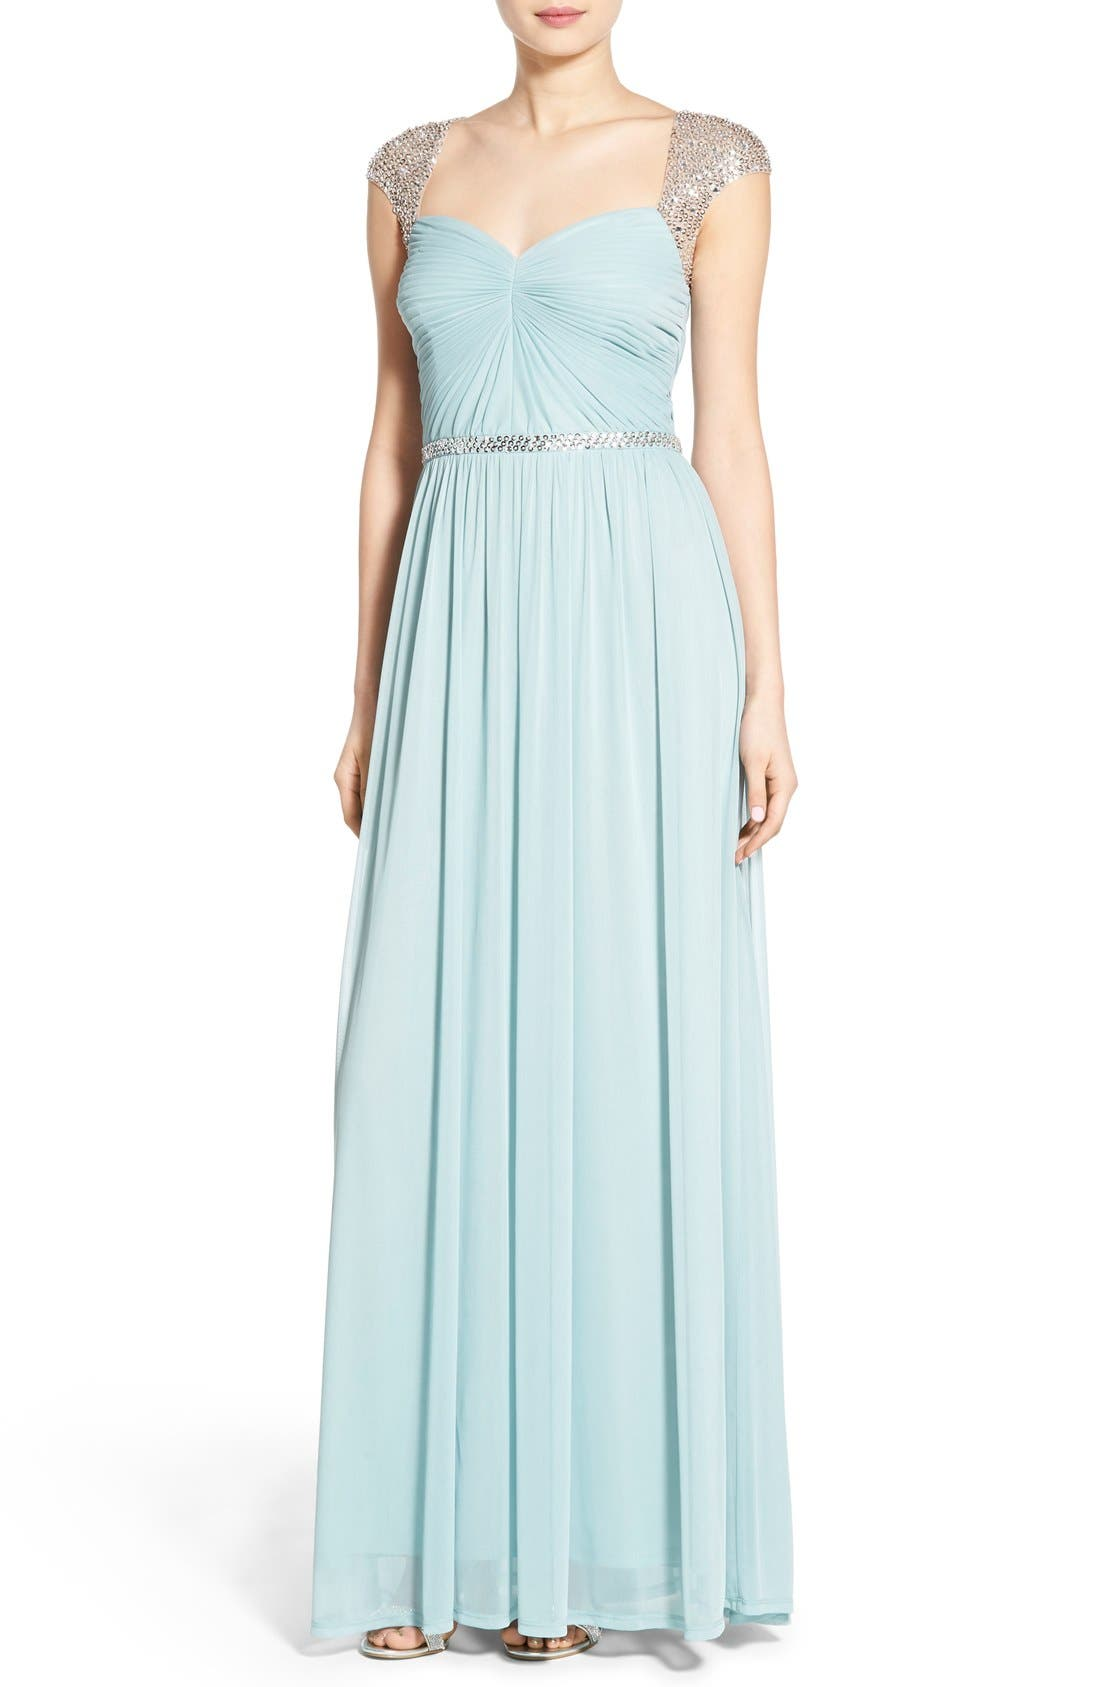 Alternate Image 1 Selected - Adrianna Papell Embellished Ruched Jersey Gown